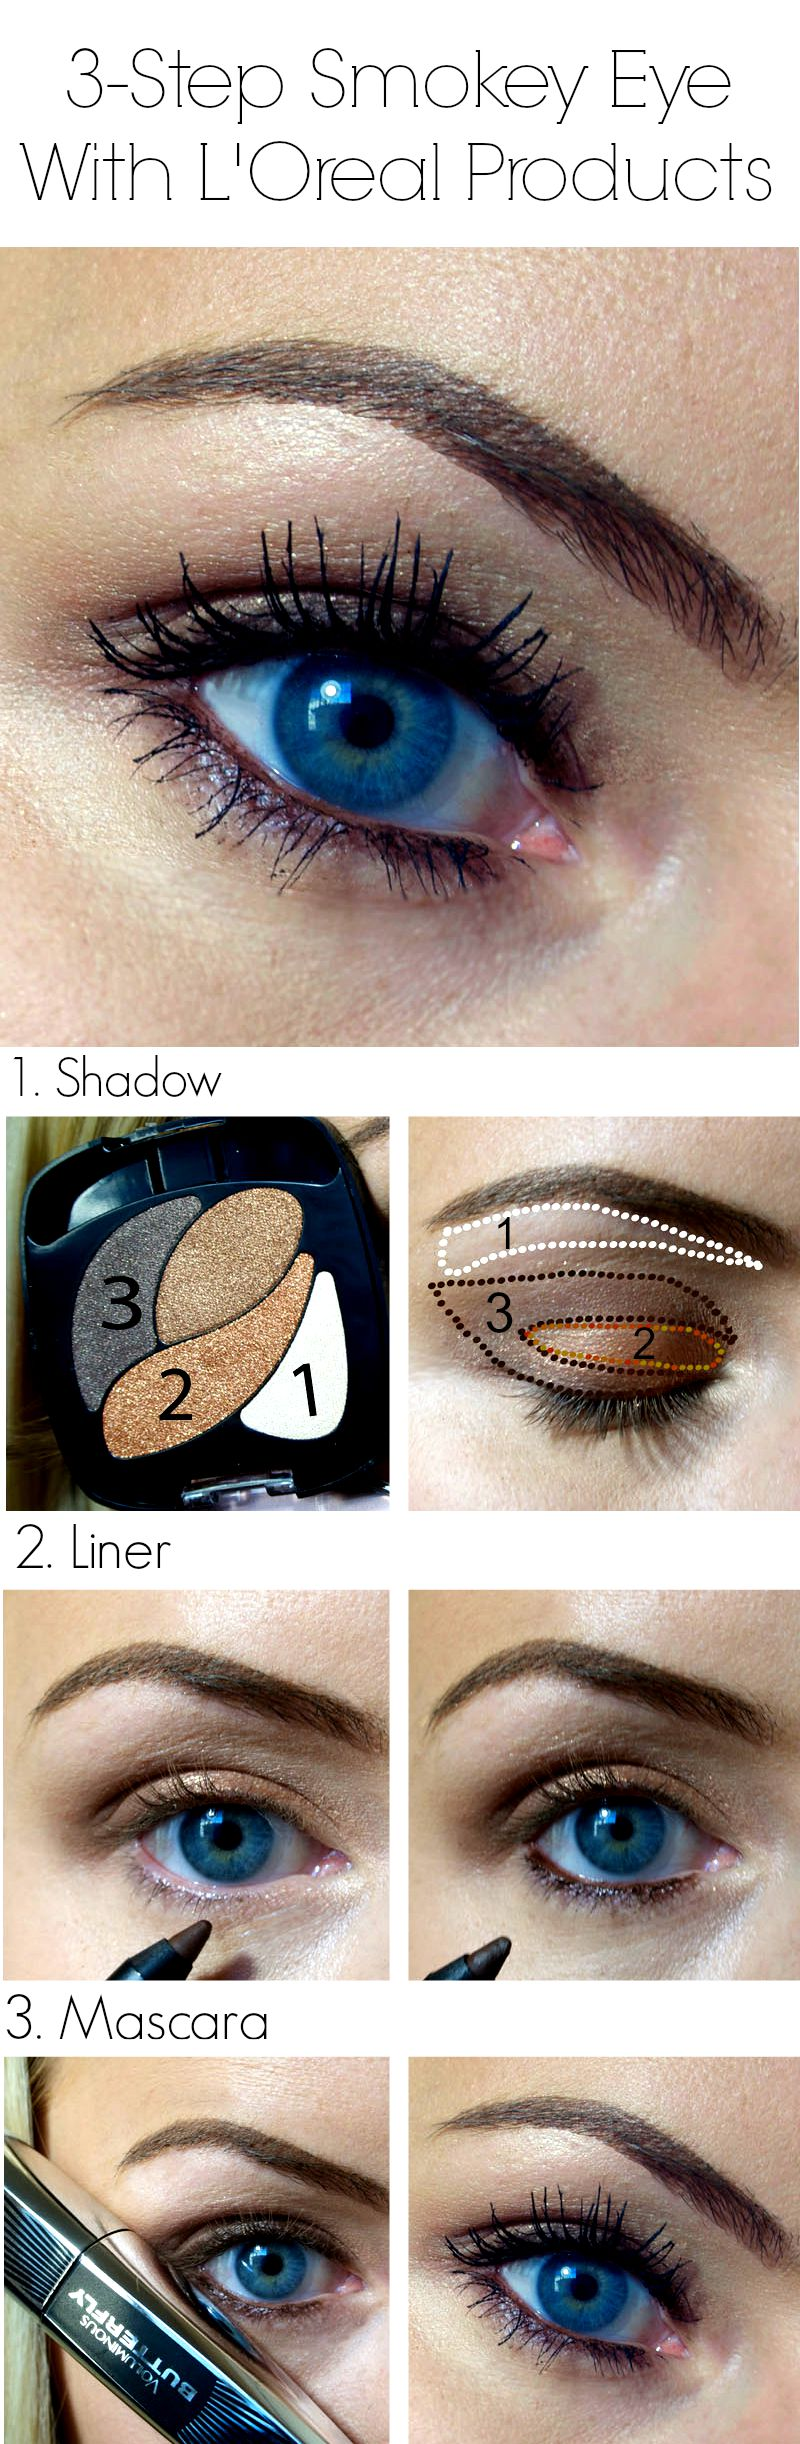 Easy 5-minute makeup using L'Oreal products #shop